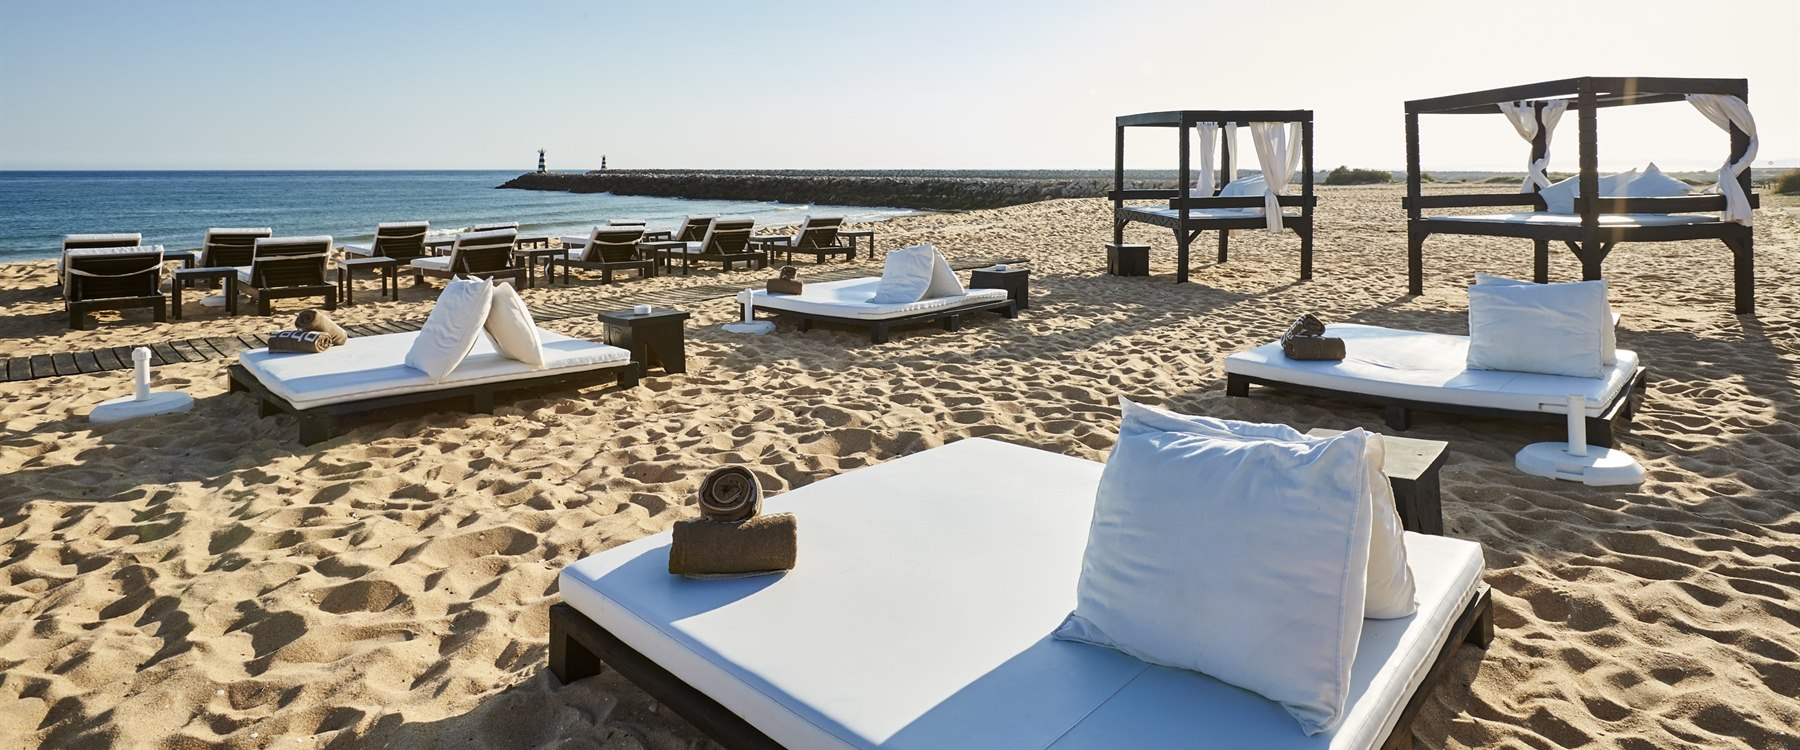 Paro Beach at Anantara Vilamoura, Algarve